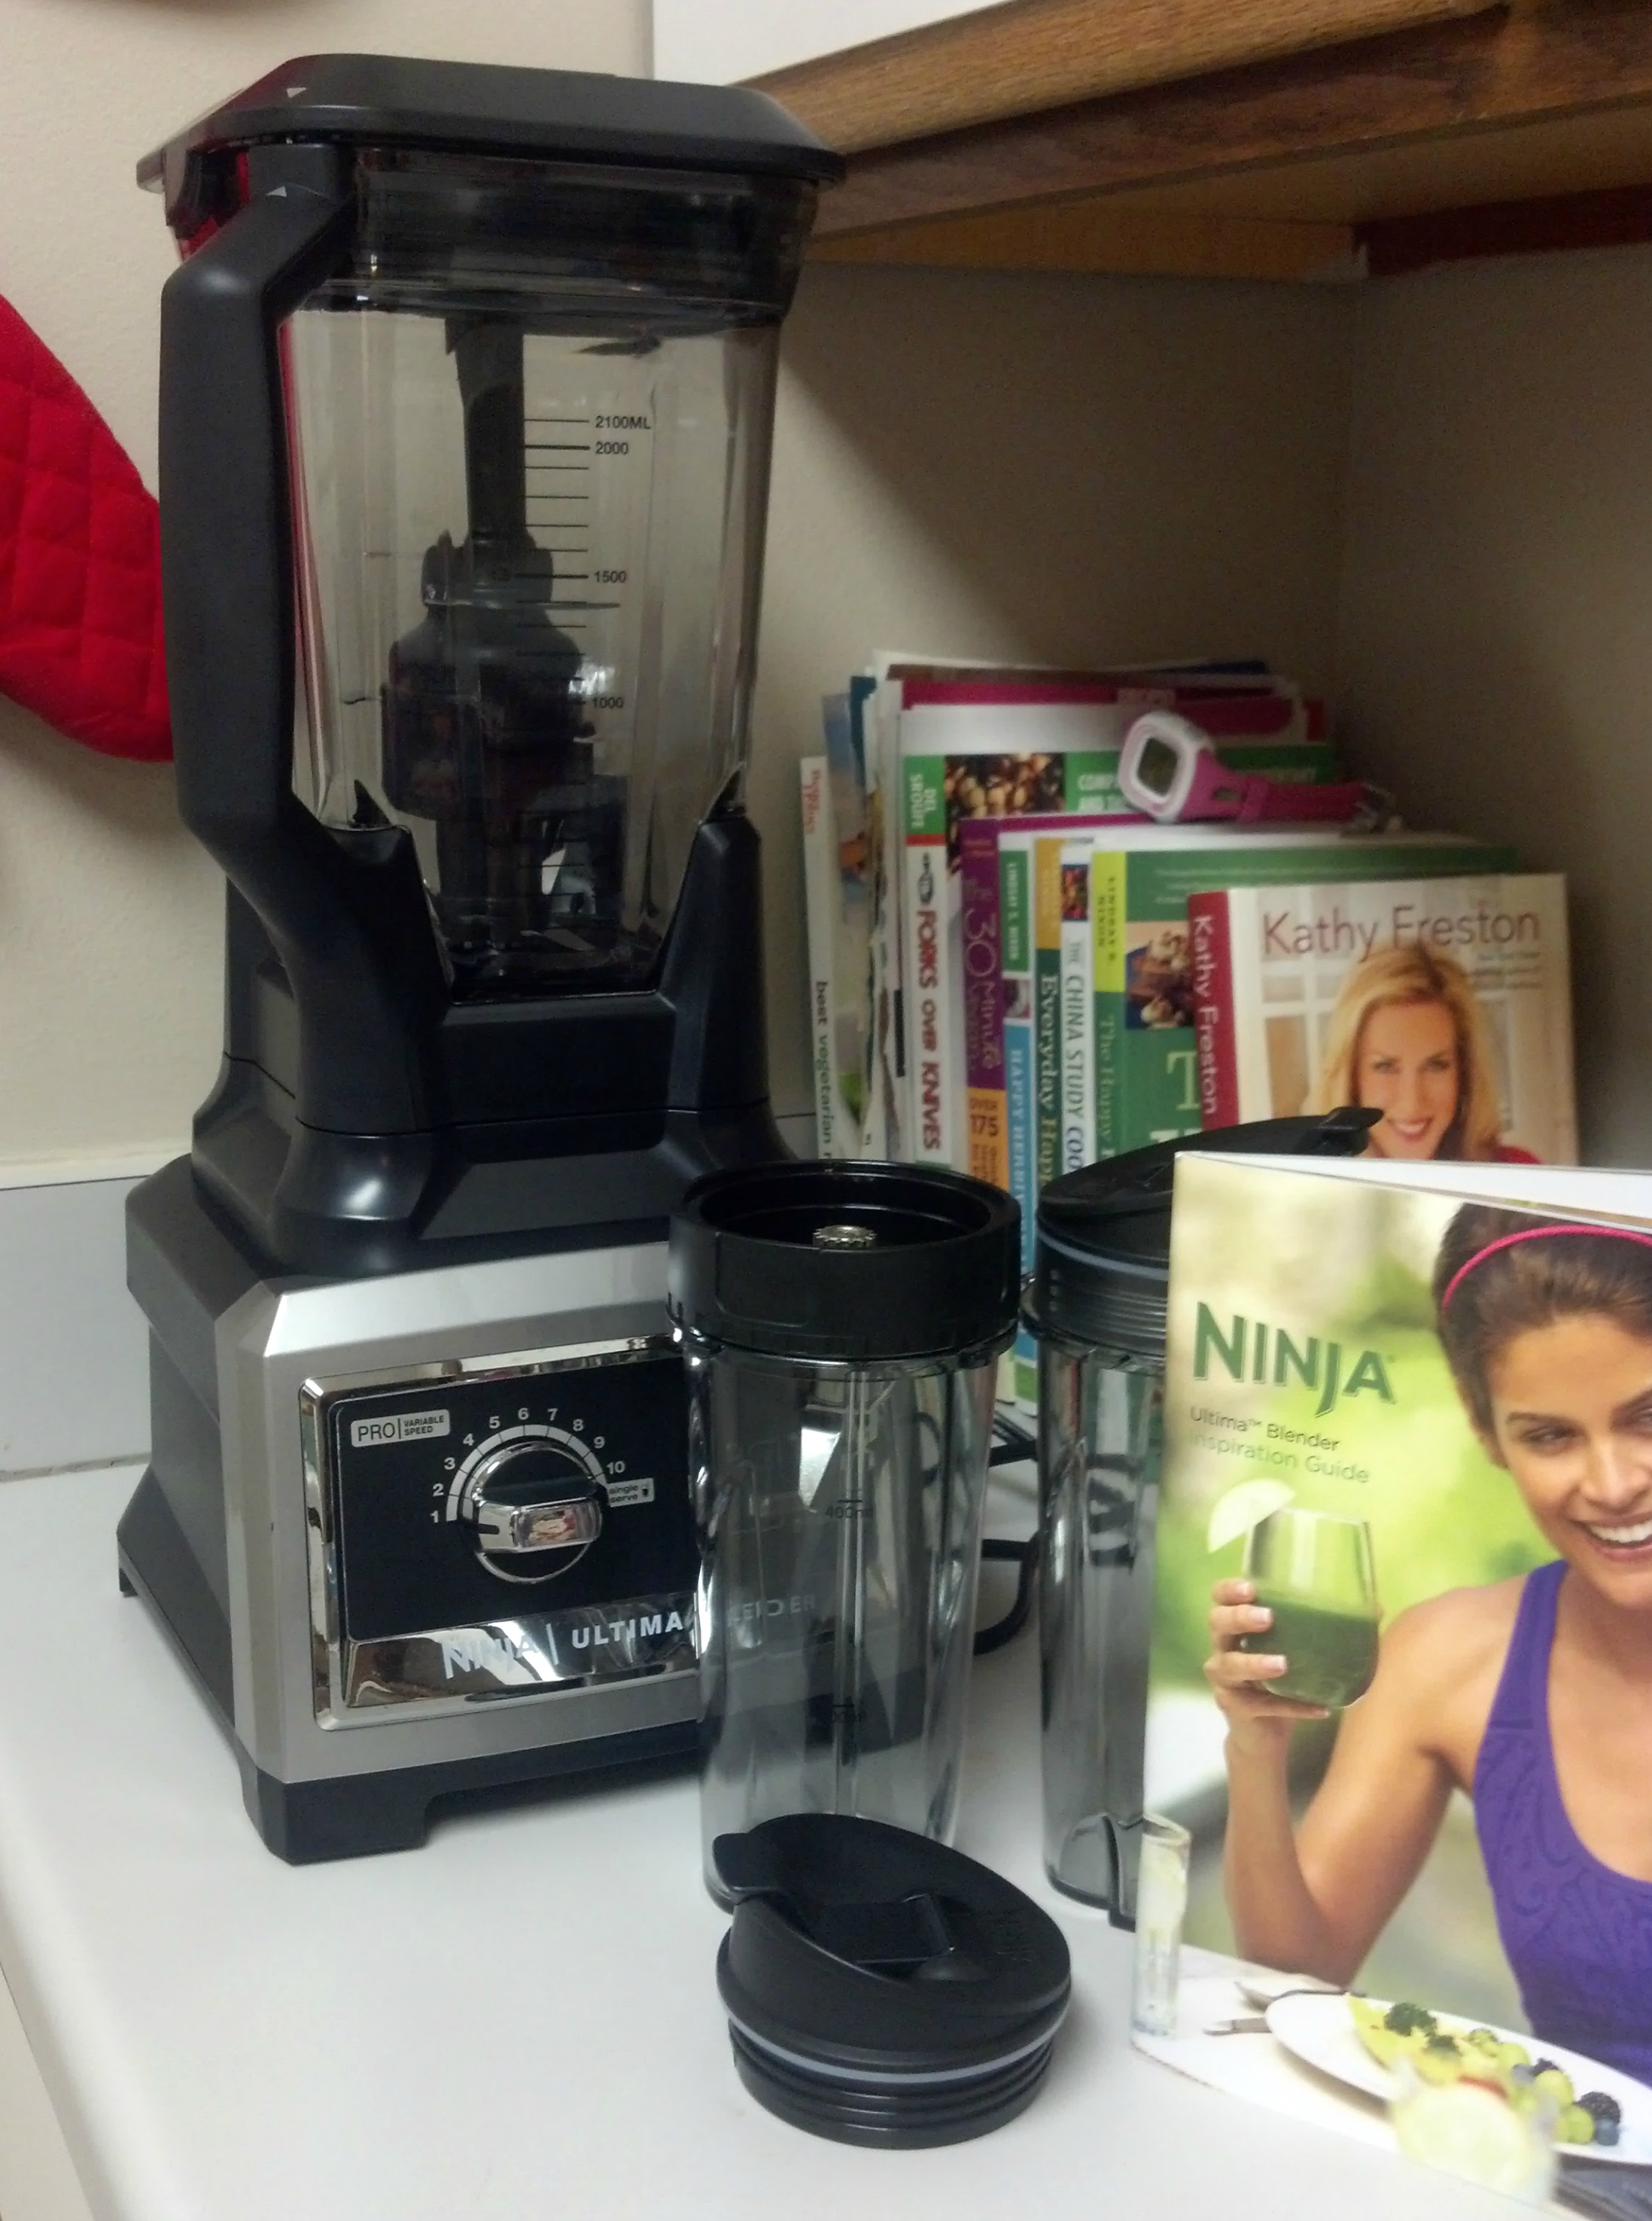 The Ninja Ultima Blender Green Monster Smoothie And Sweet